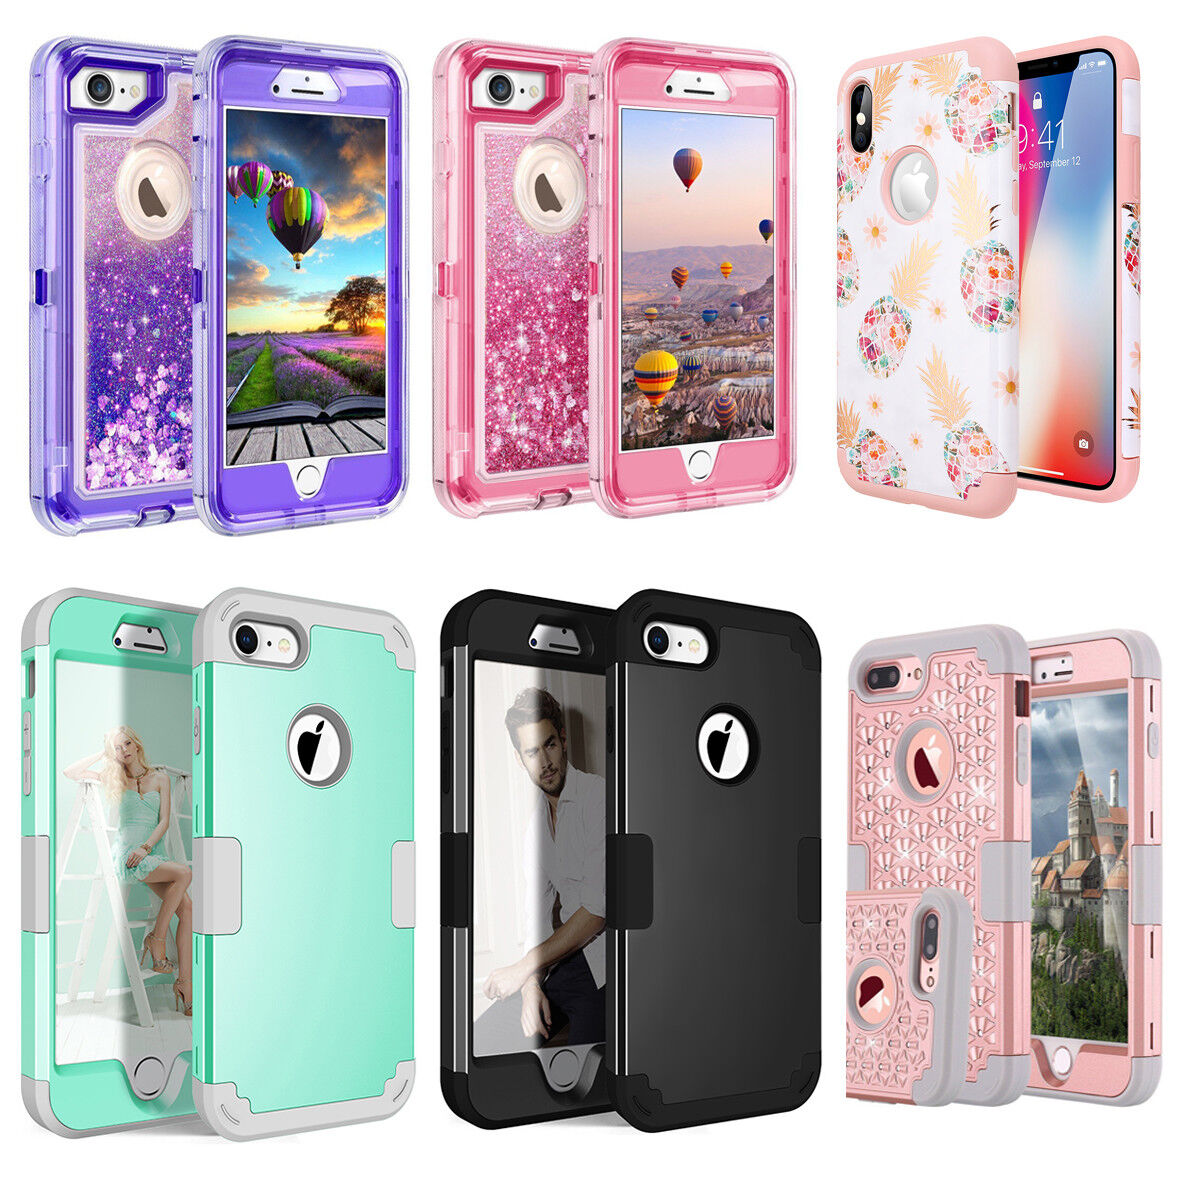 iPhone X 6S 8 7 Plus XS Max Case Hybrid Rugged Hard Heavy Duty Shockproof Cover